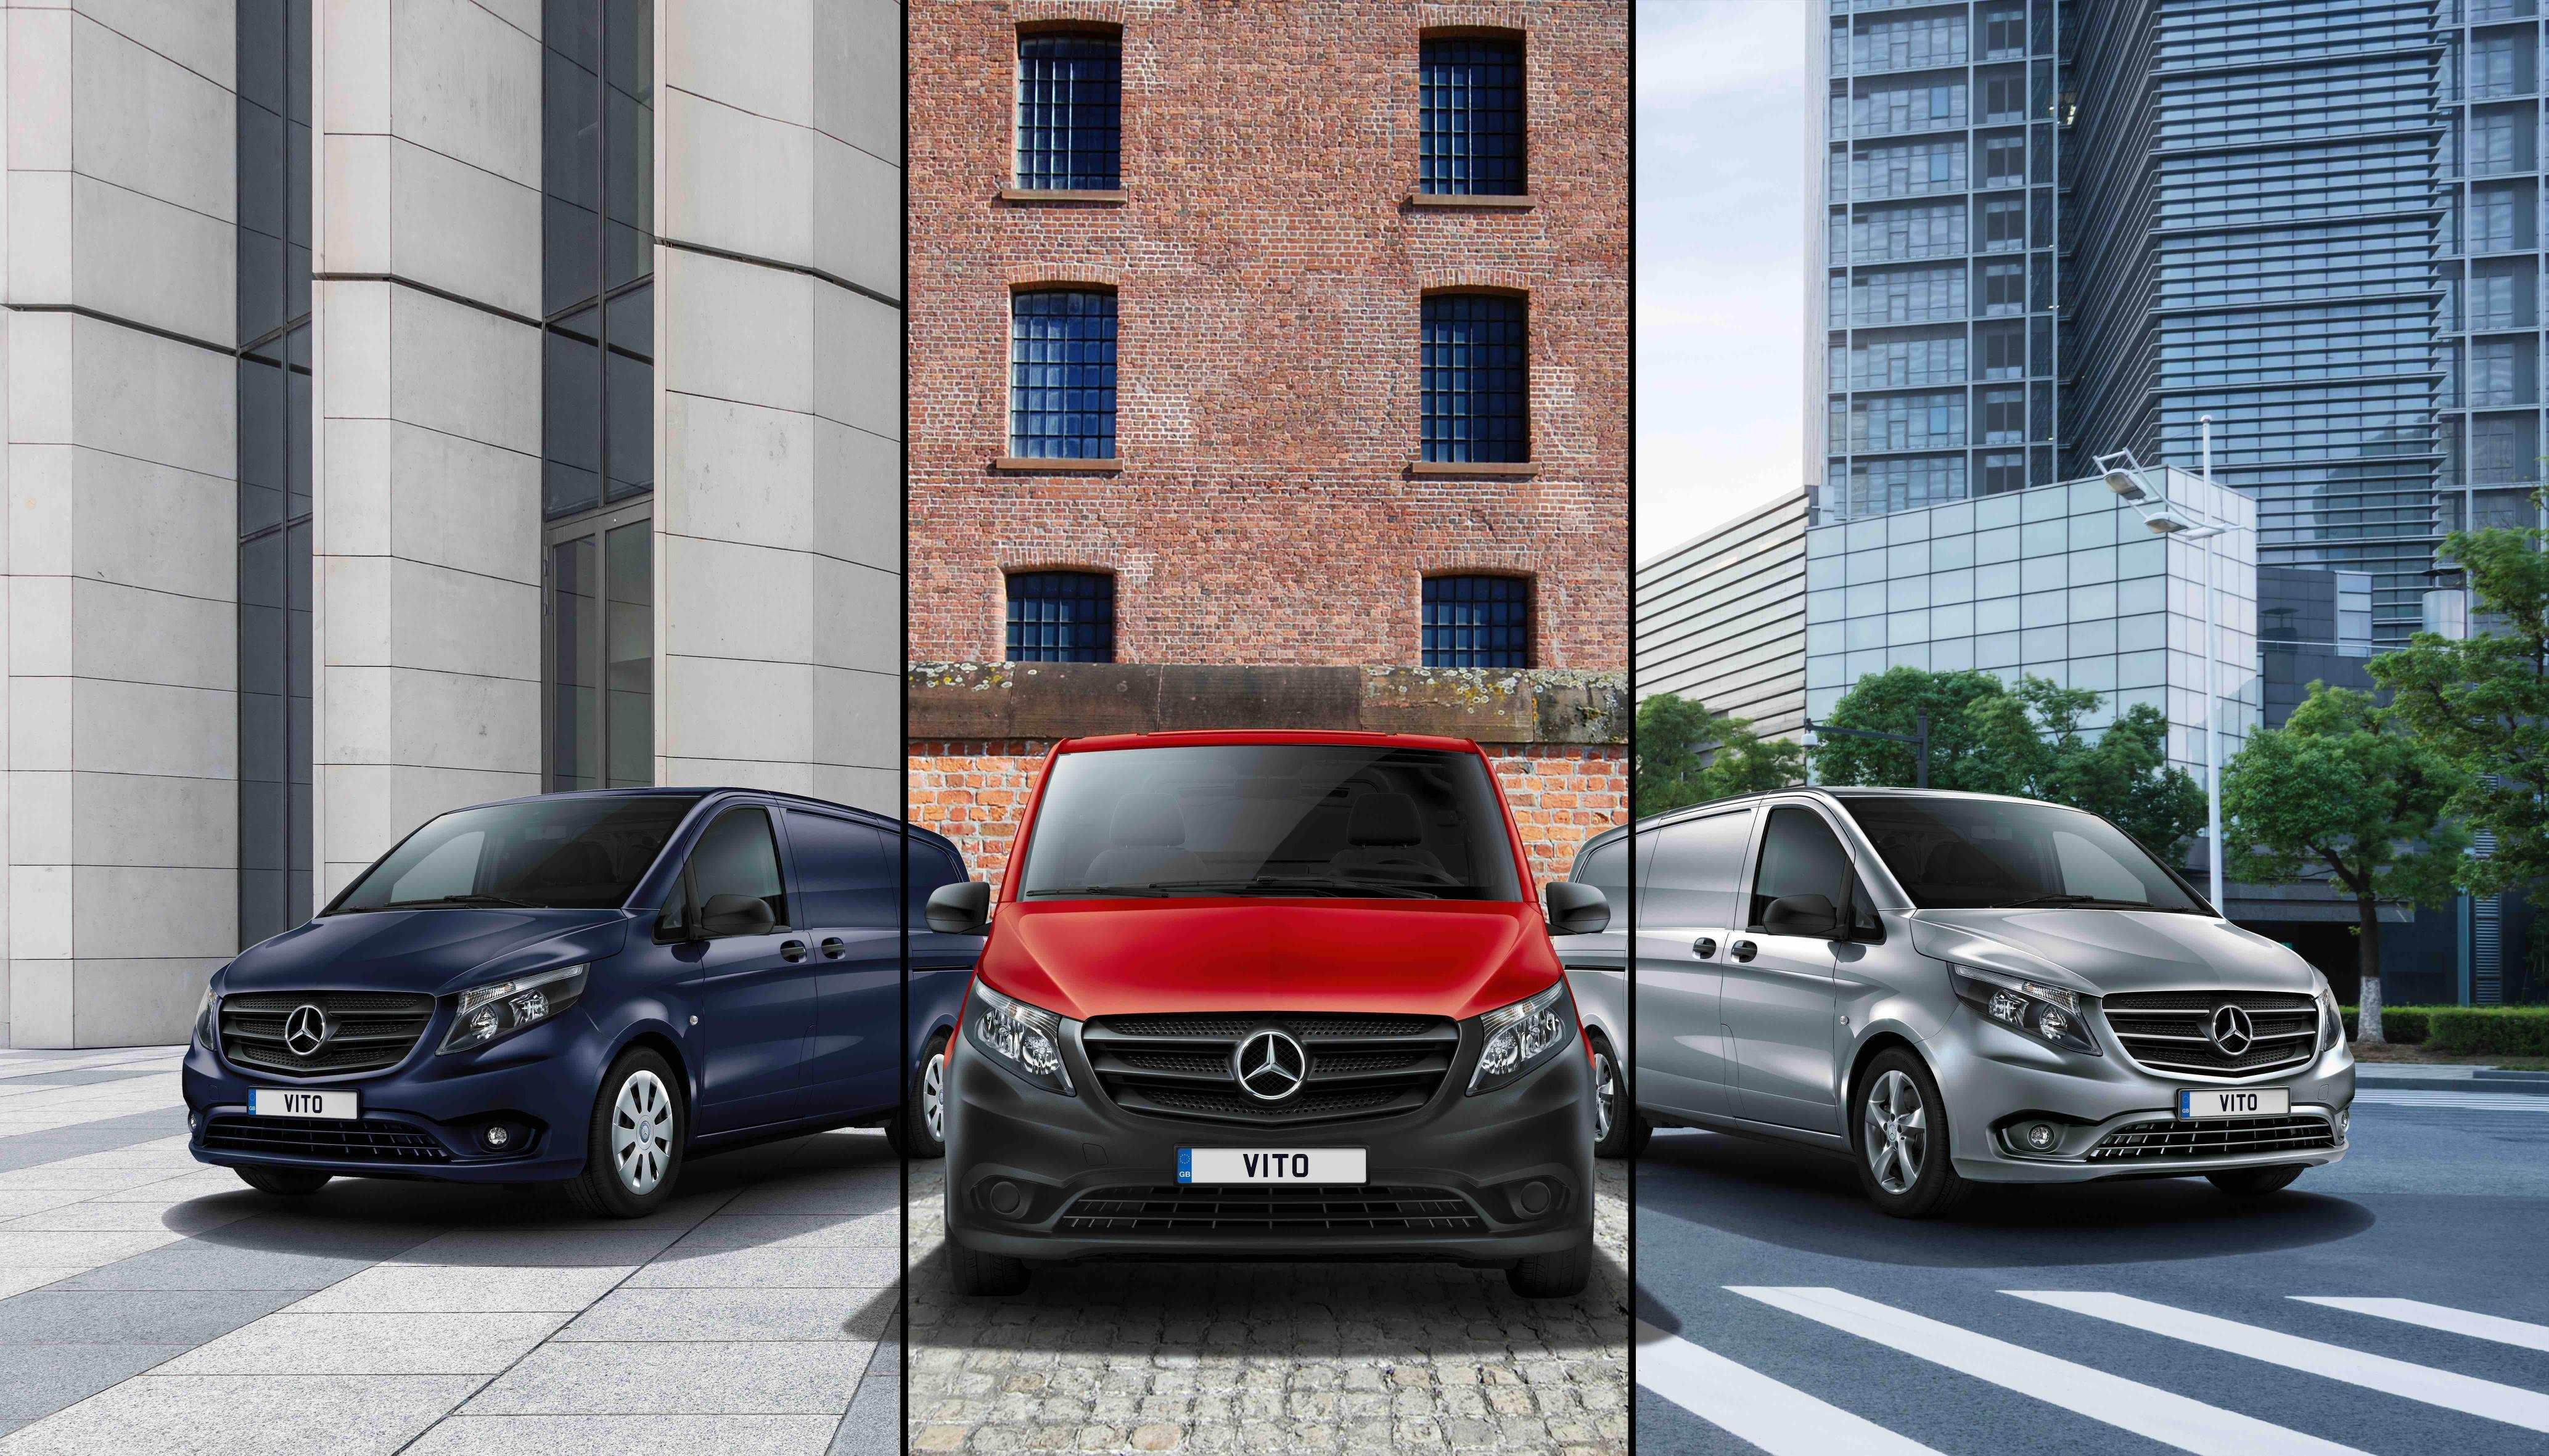 91 New Mercedes Vito 2019 Specs And Review